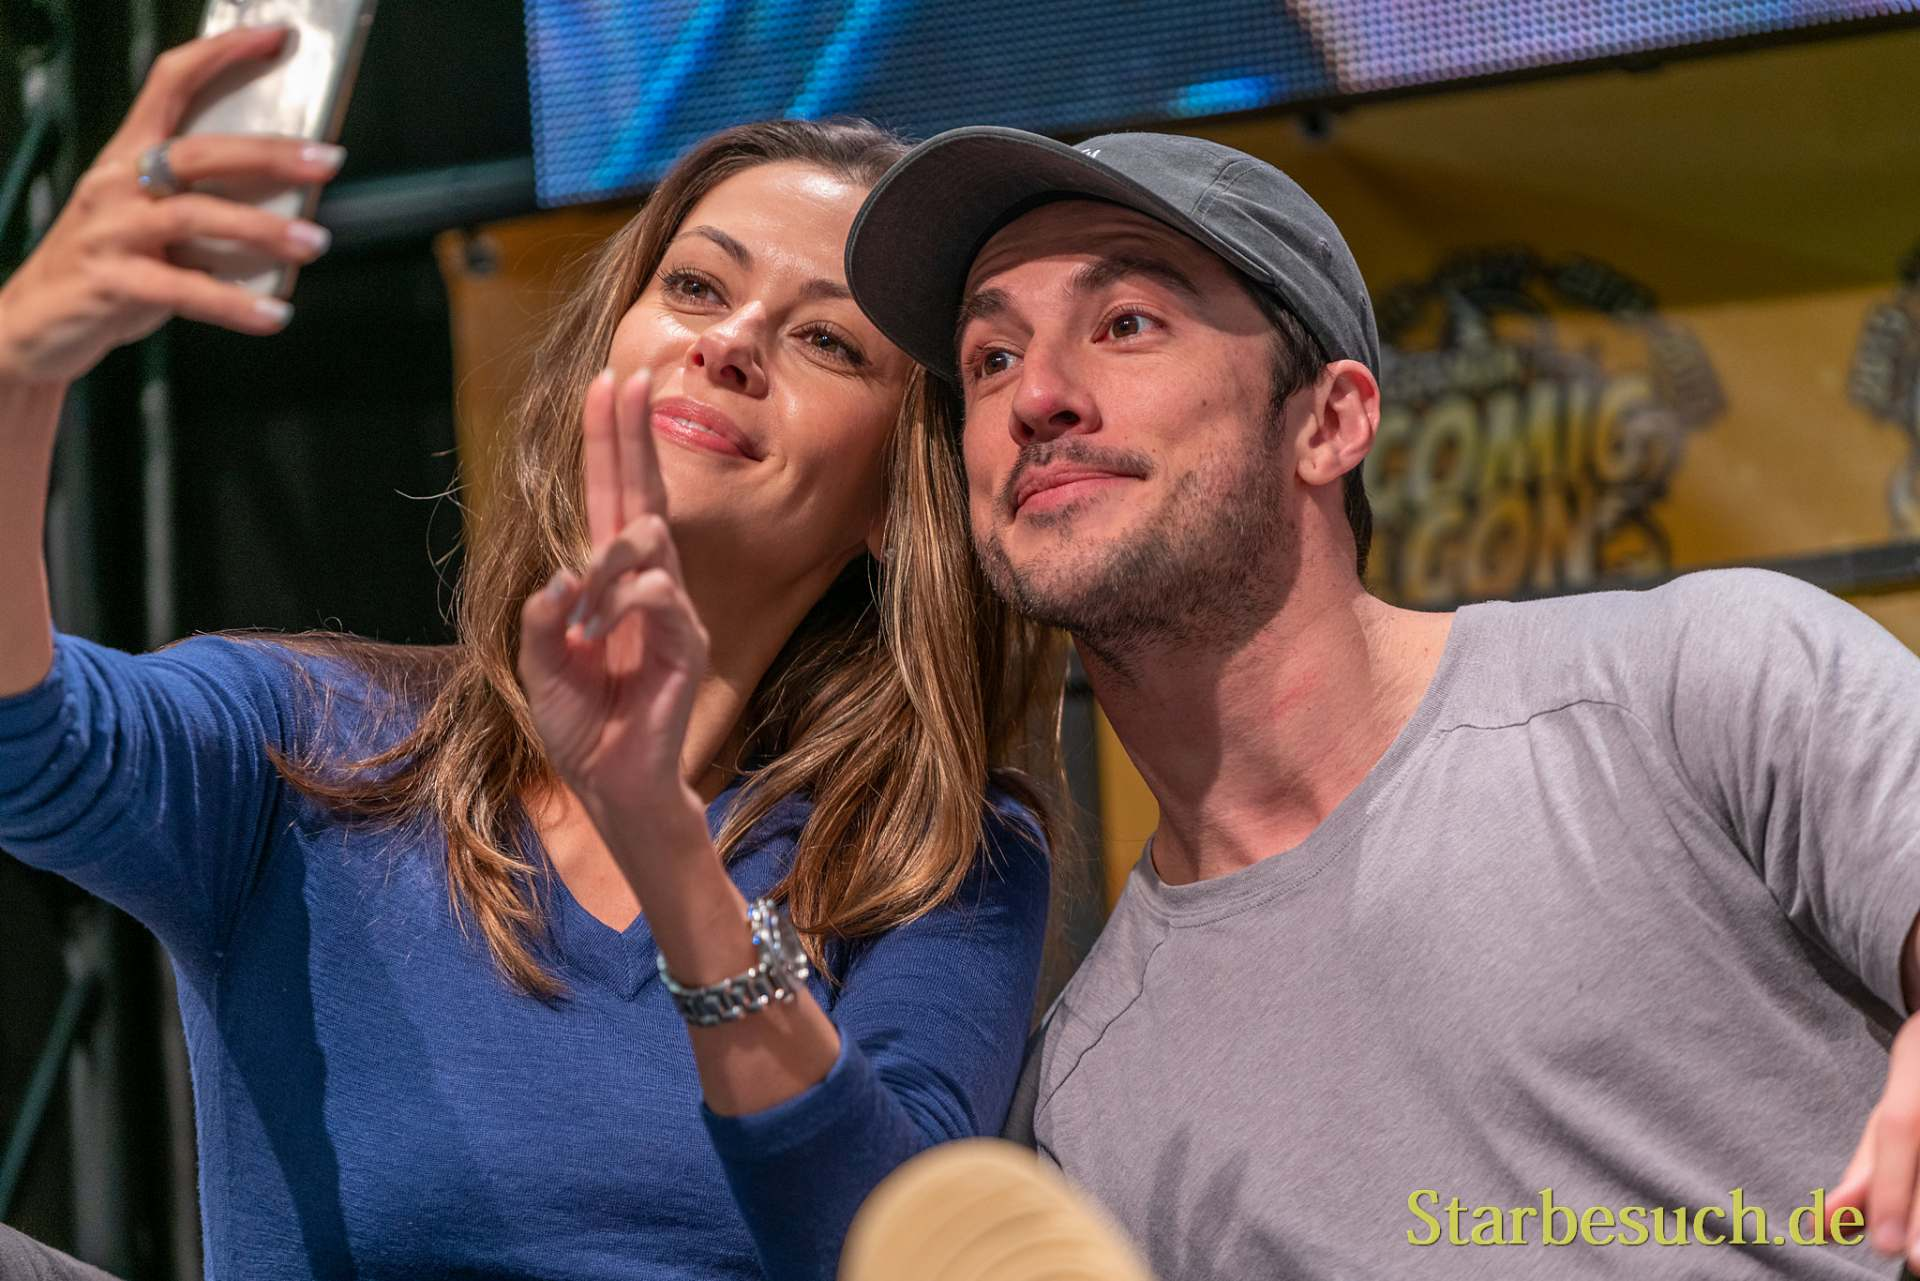 DORTMUND, GERMANY - December 8th 2019: Olga Fonda and Michael Trevino at German Comic Con Dortmund